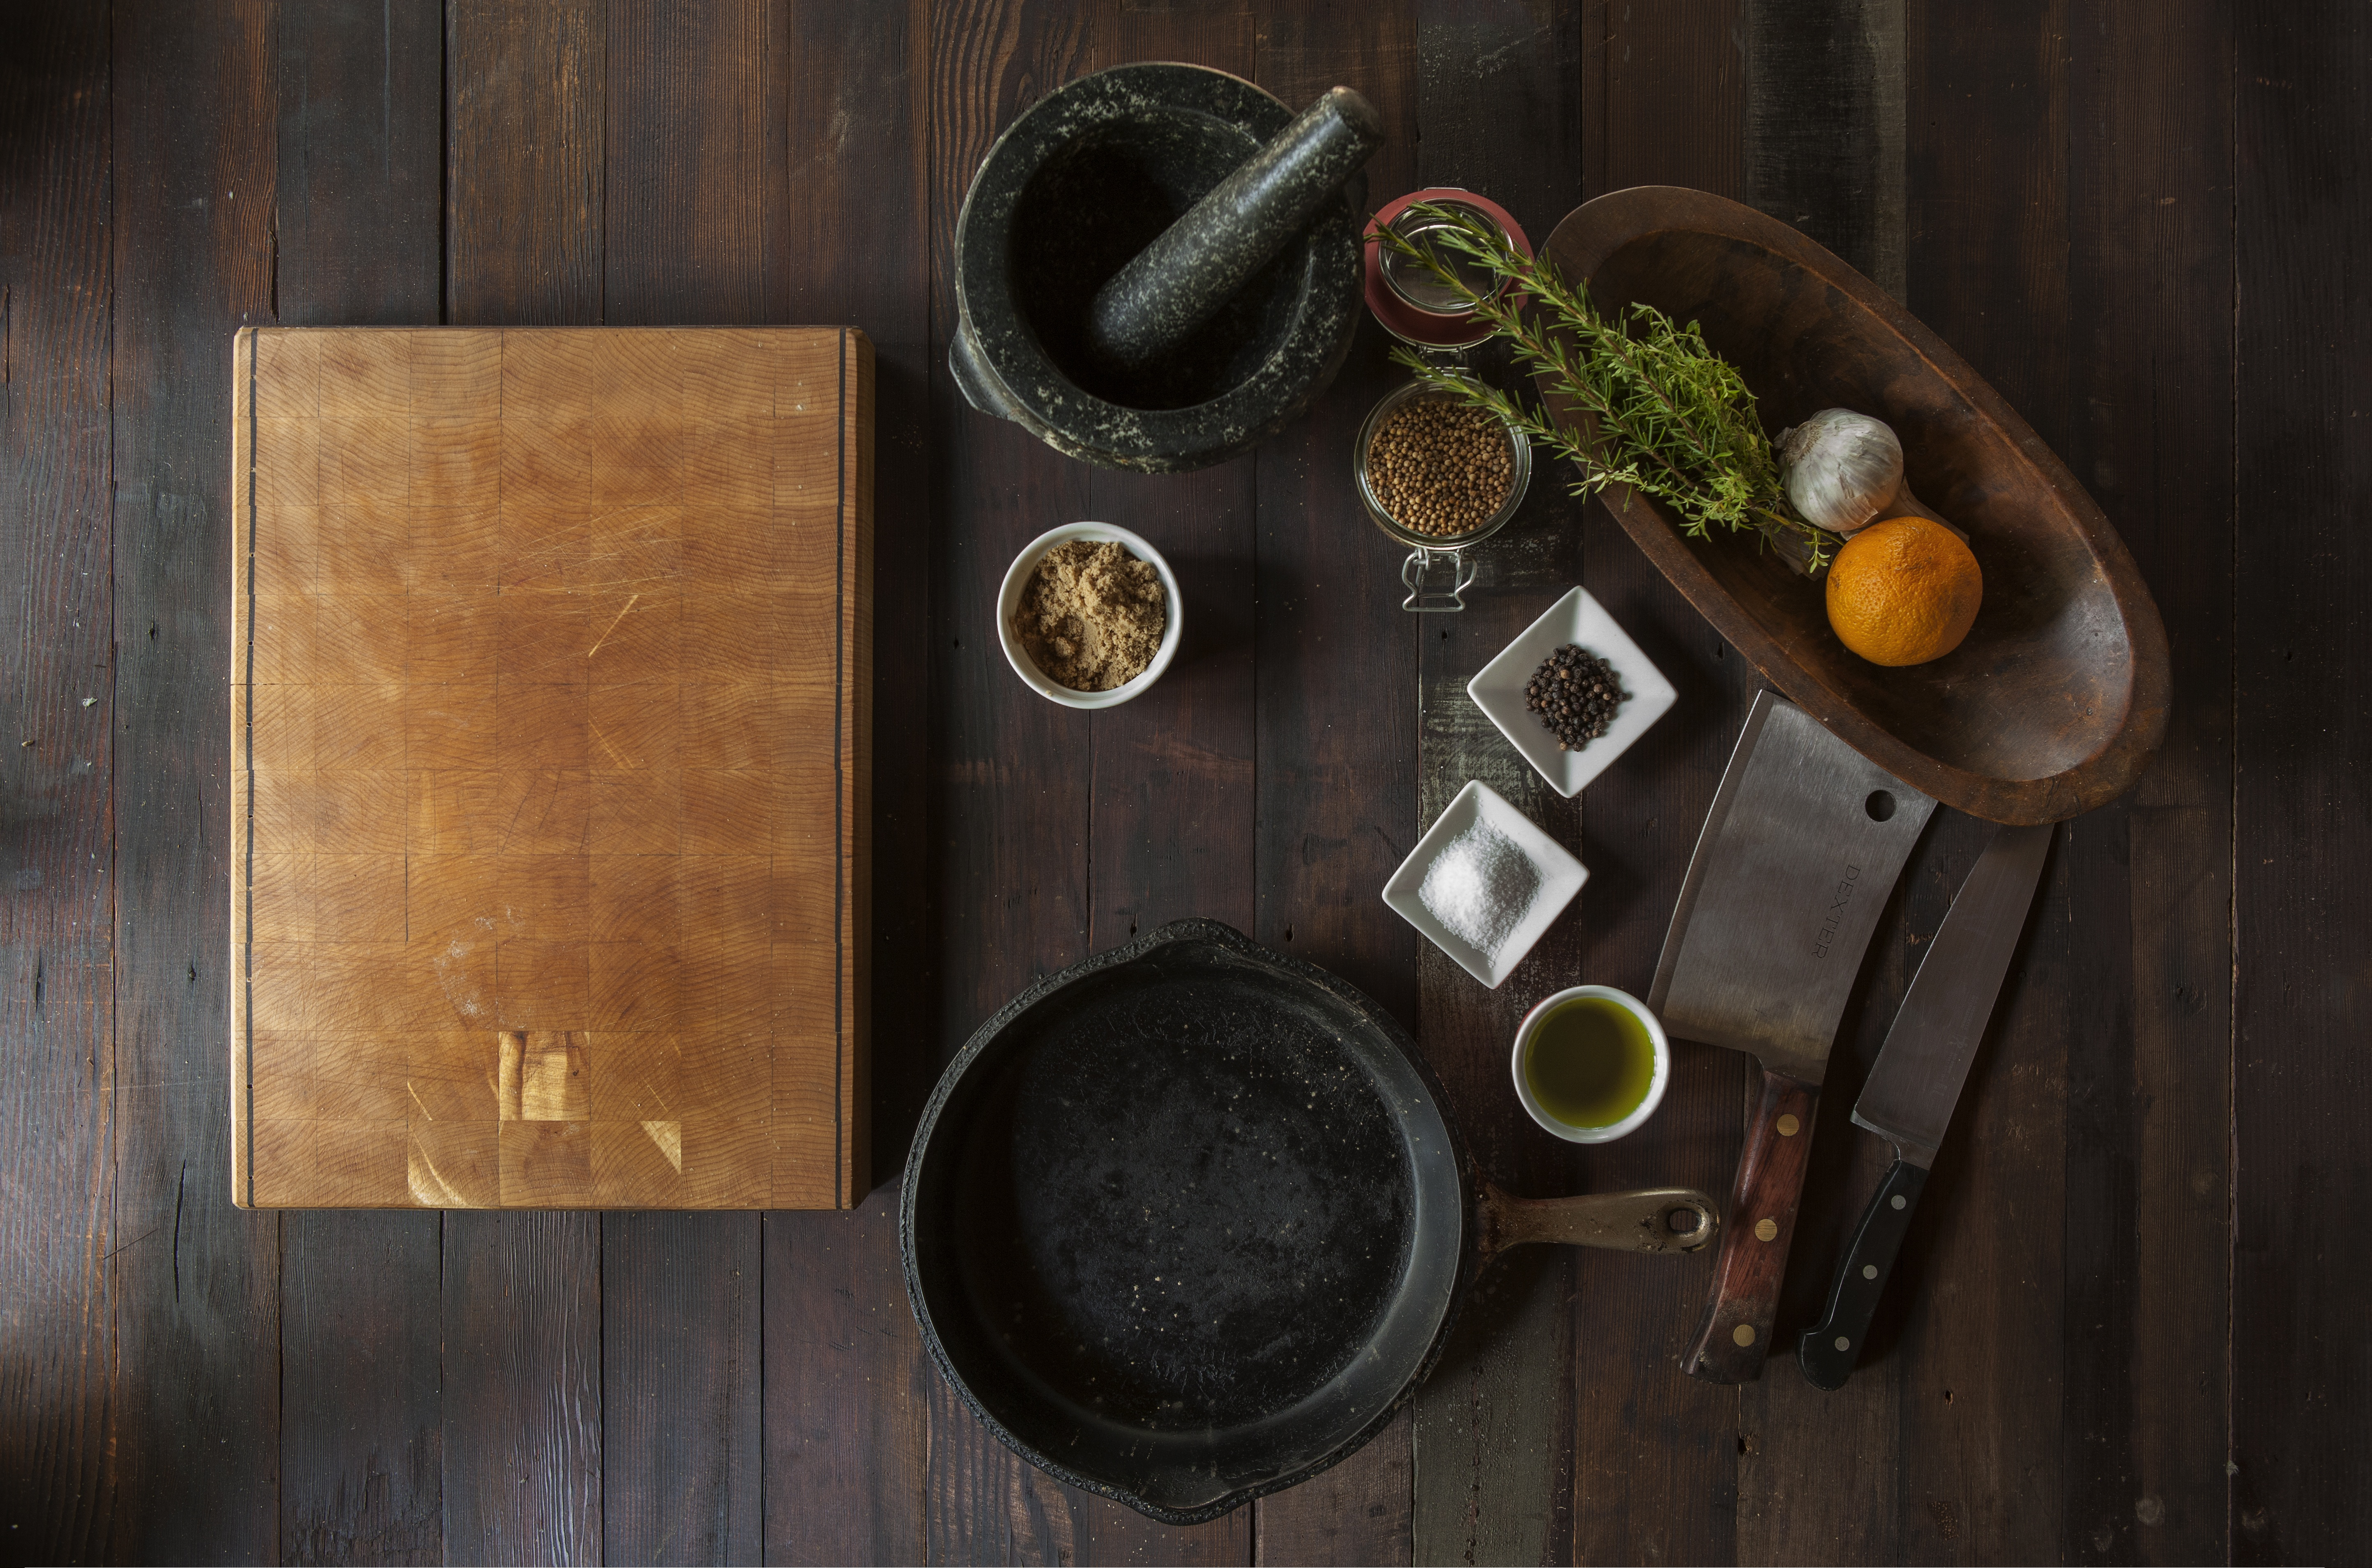 food-kitchen-cutting-board-cooking (1)